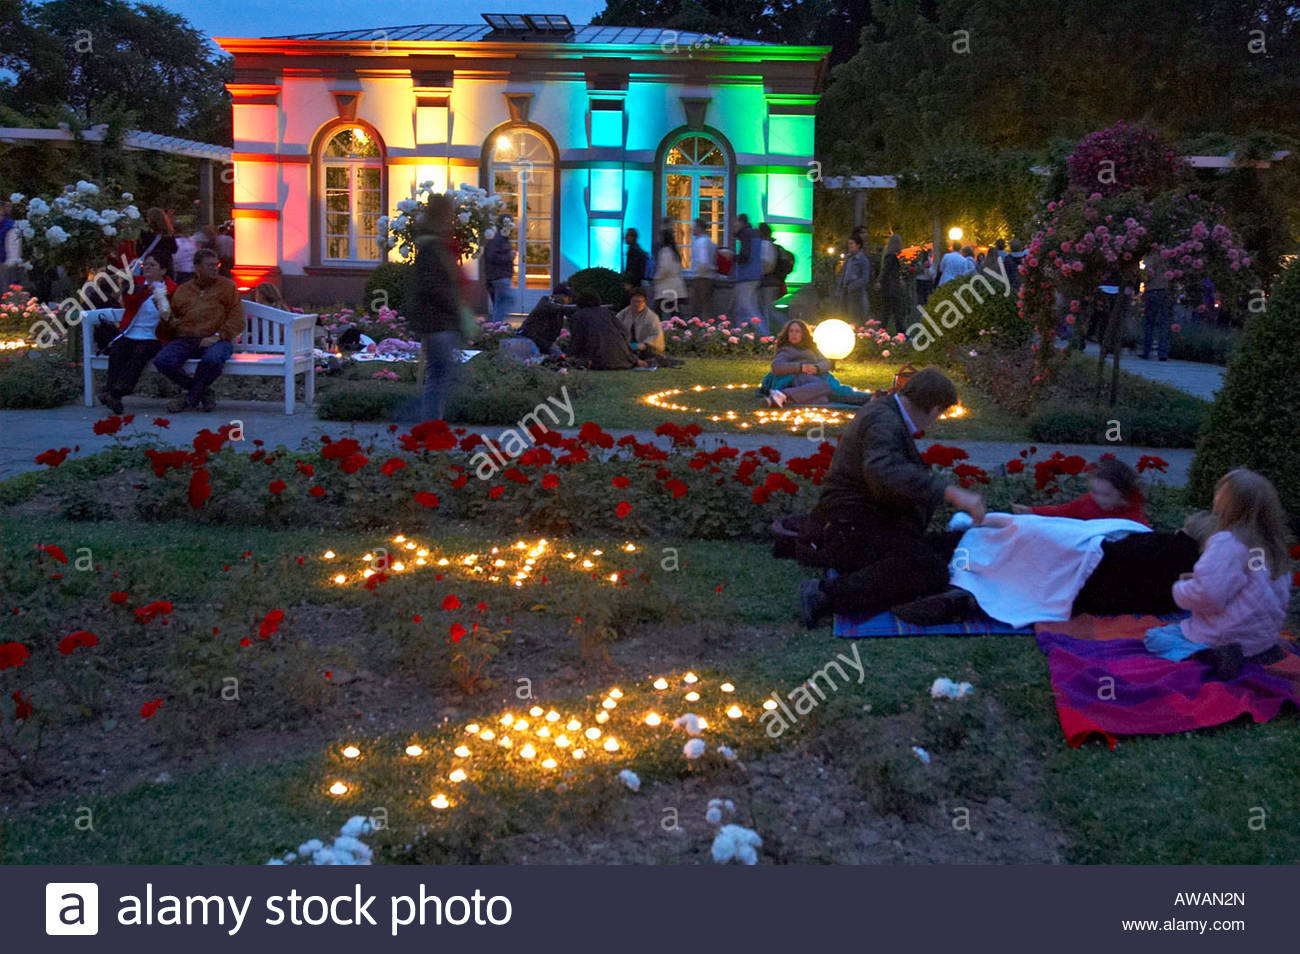 frankfurt main palmengarten rosen und lichterfest stockfoto bild 16521260 alamy. Black Bedroom Furniture Sets. Home Design Ideas